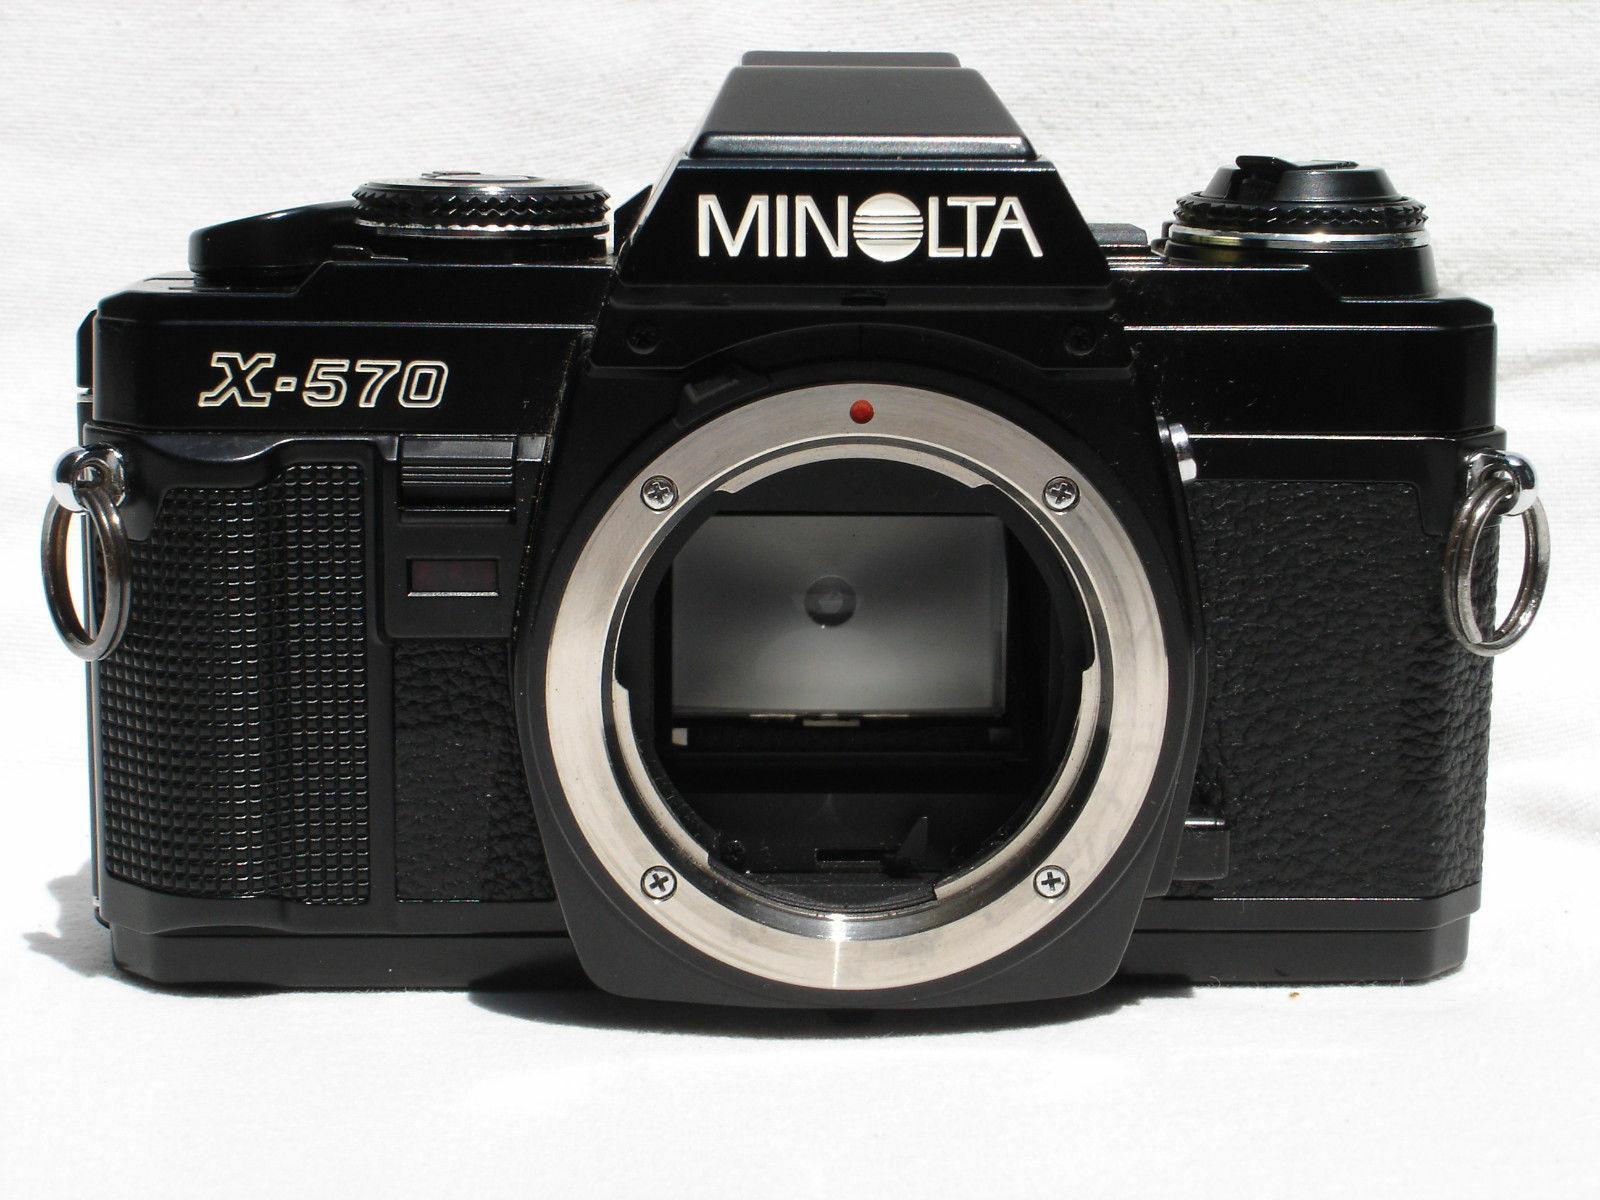 Minolta X-570 35mm SLR Film Camera Body Only | eBay